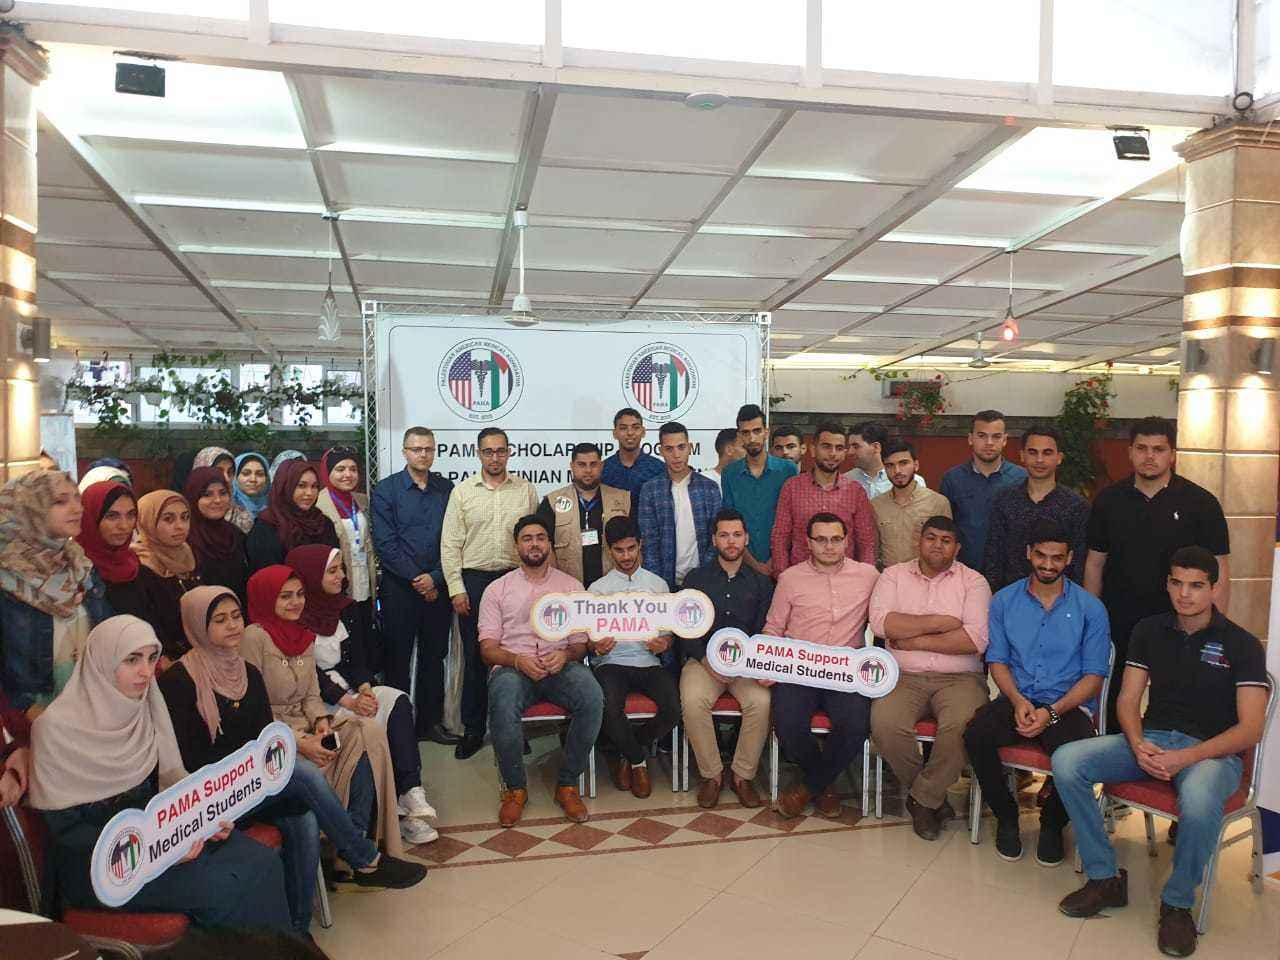 Donate now to help Palestinian students in need image